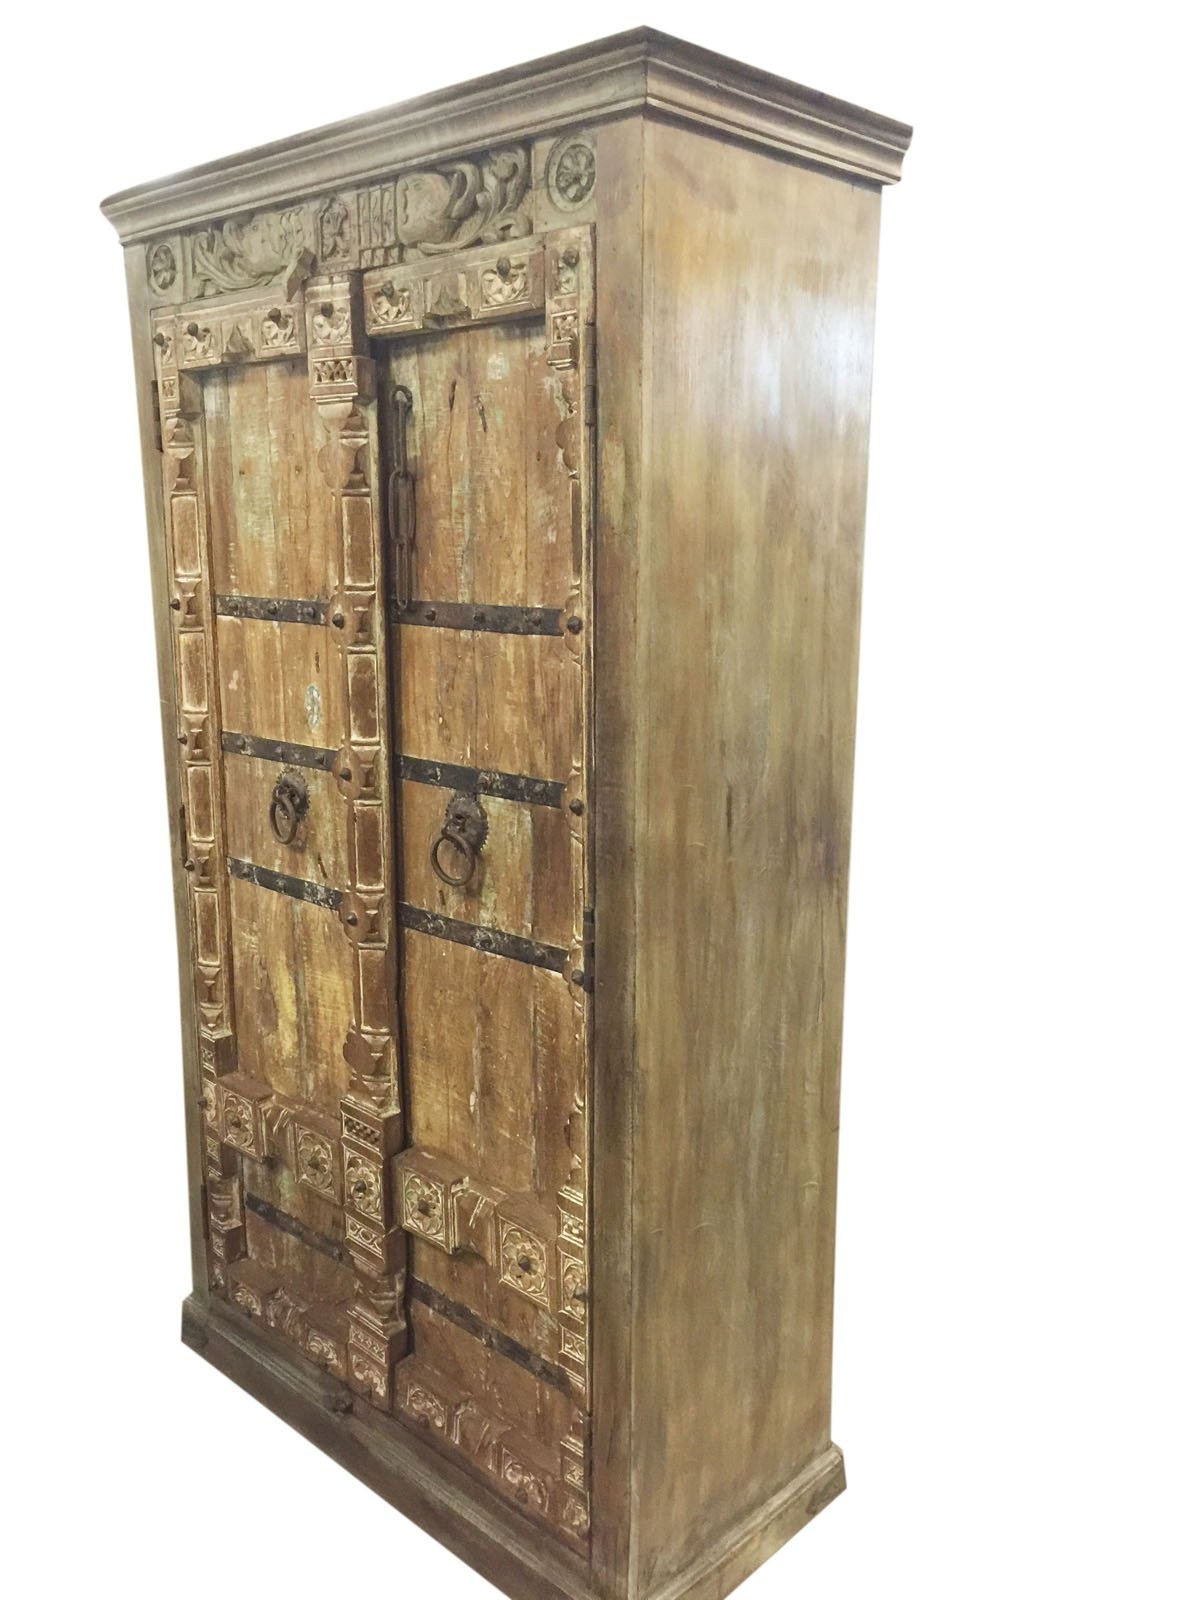 Mogul Antique Wardrobe Old Doors Indian Furniture Iron Storage Cabinet Eclectic mix Decor